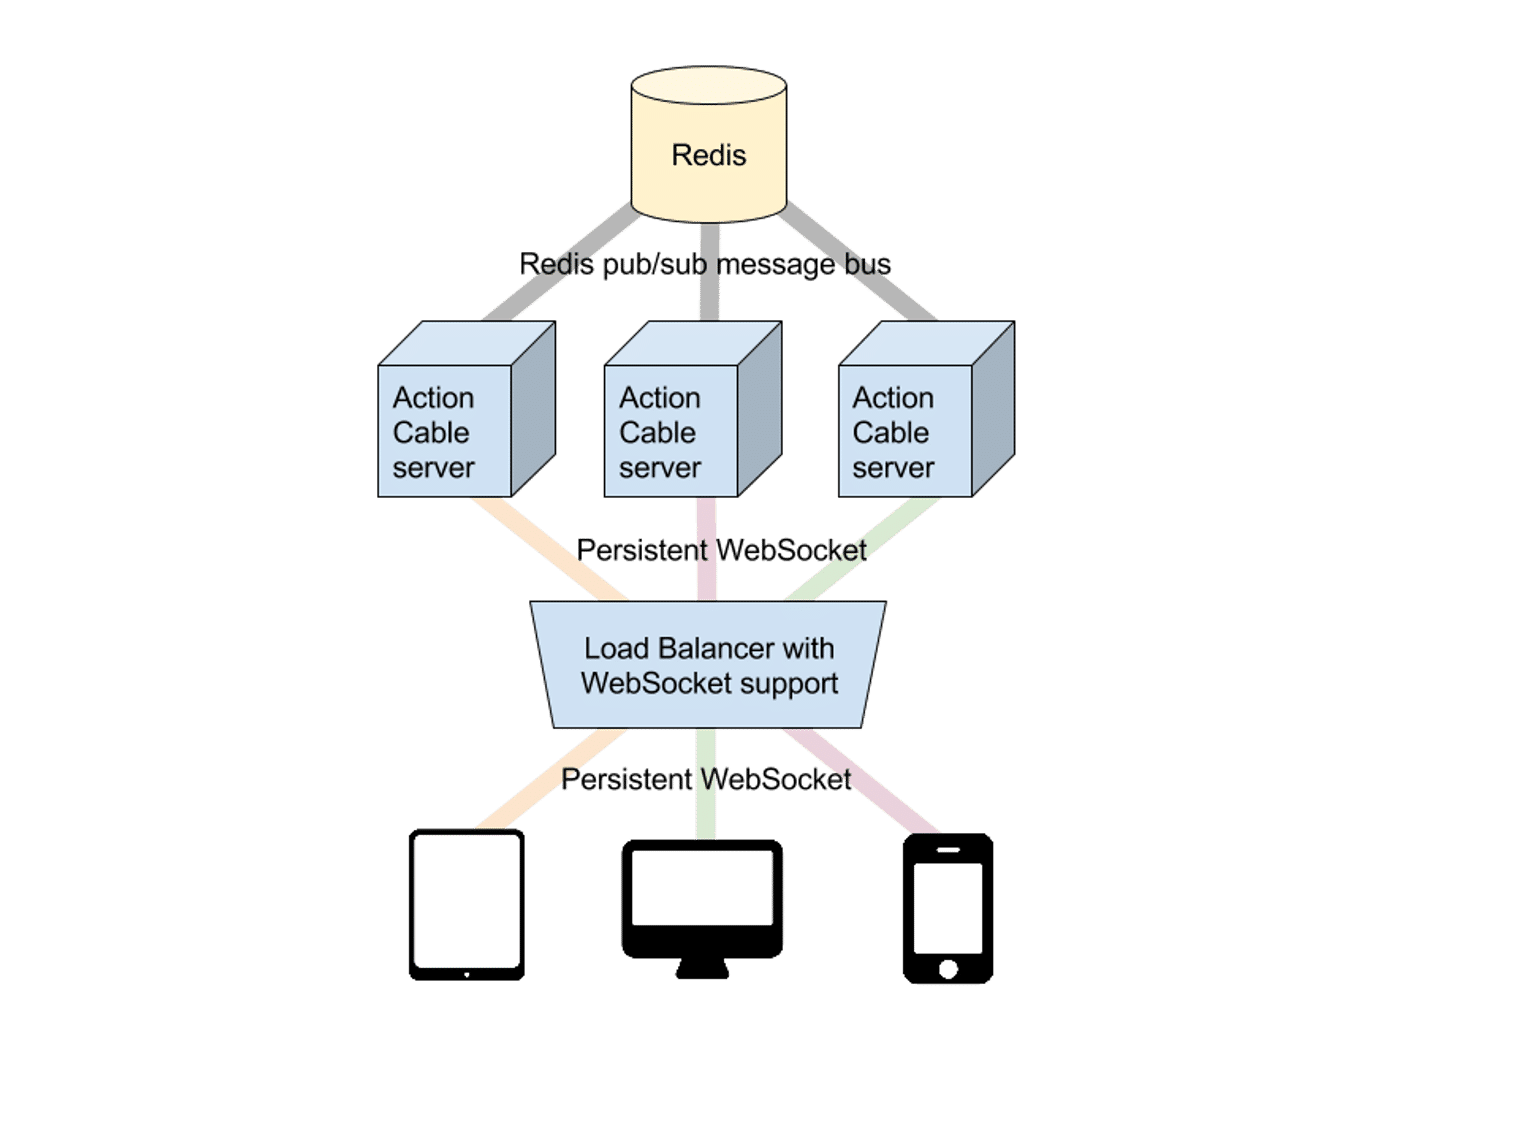 High level diagram of how the Rails ActionCable architecture works